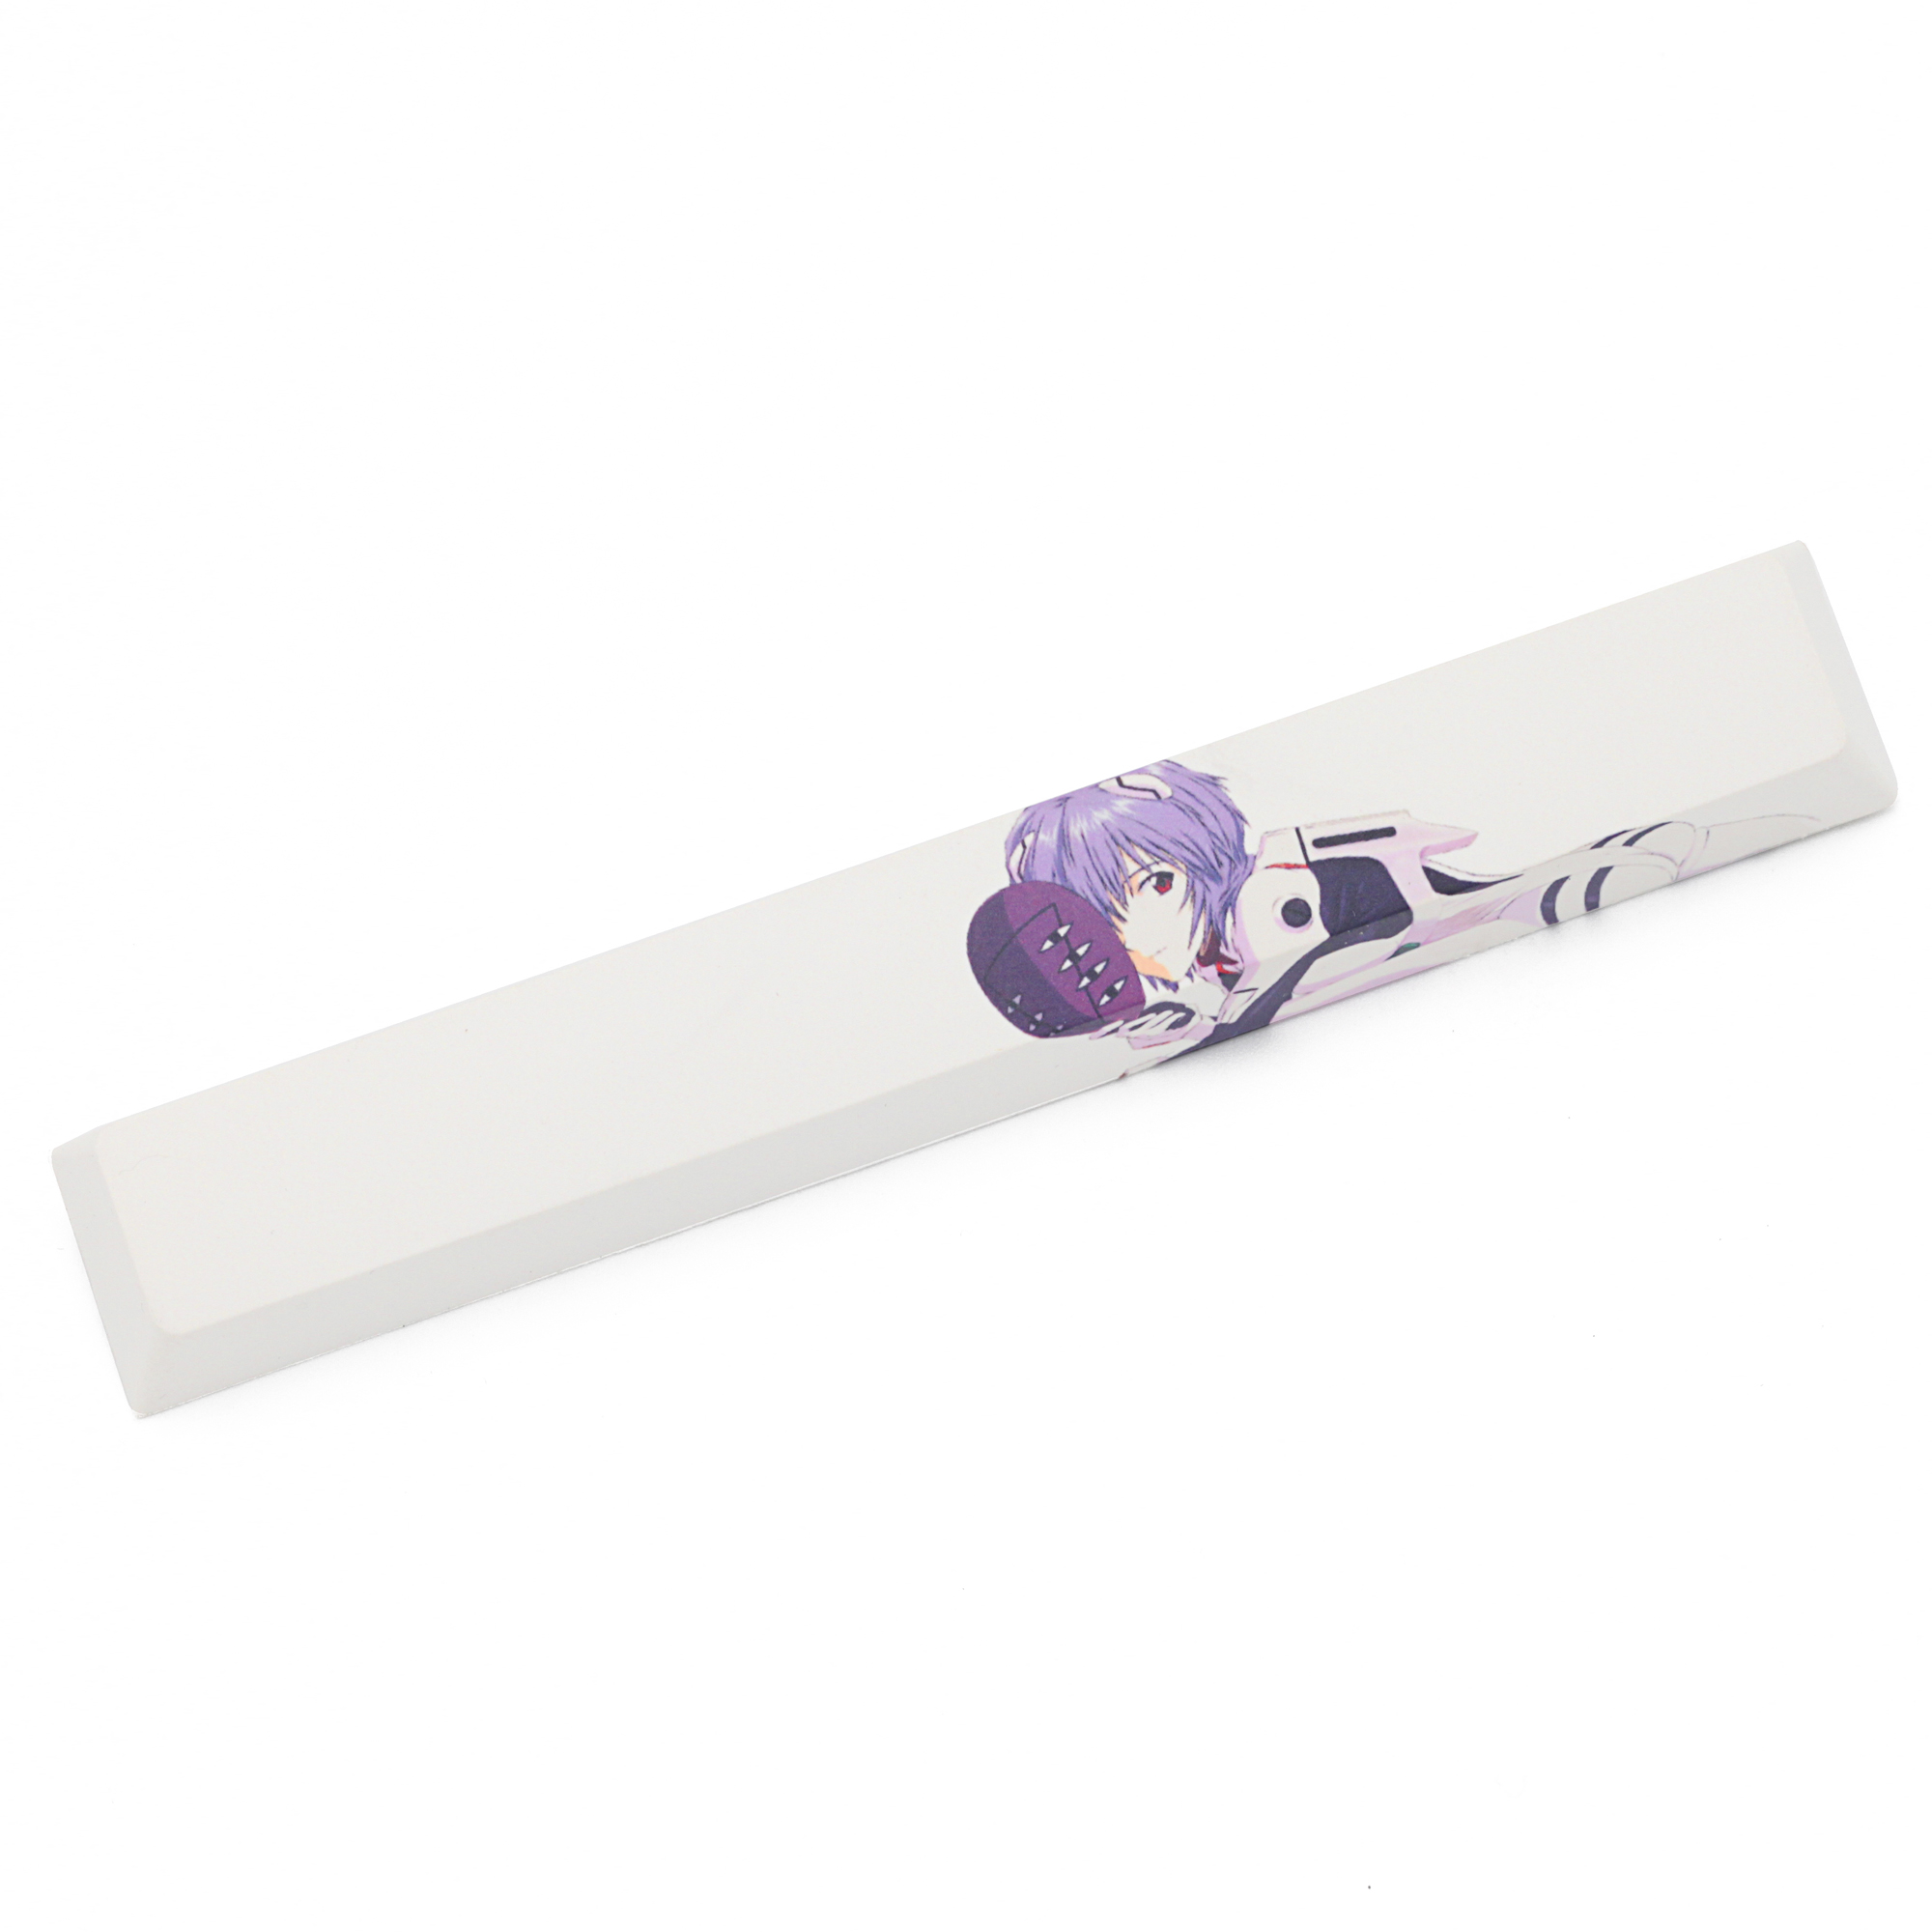 Novelty Allover Dye Subbed Keycaps Spacebar Pbt Custom Mechanical Keyboard EVA Ayanami Rei  あやなみ レイ